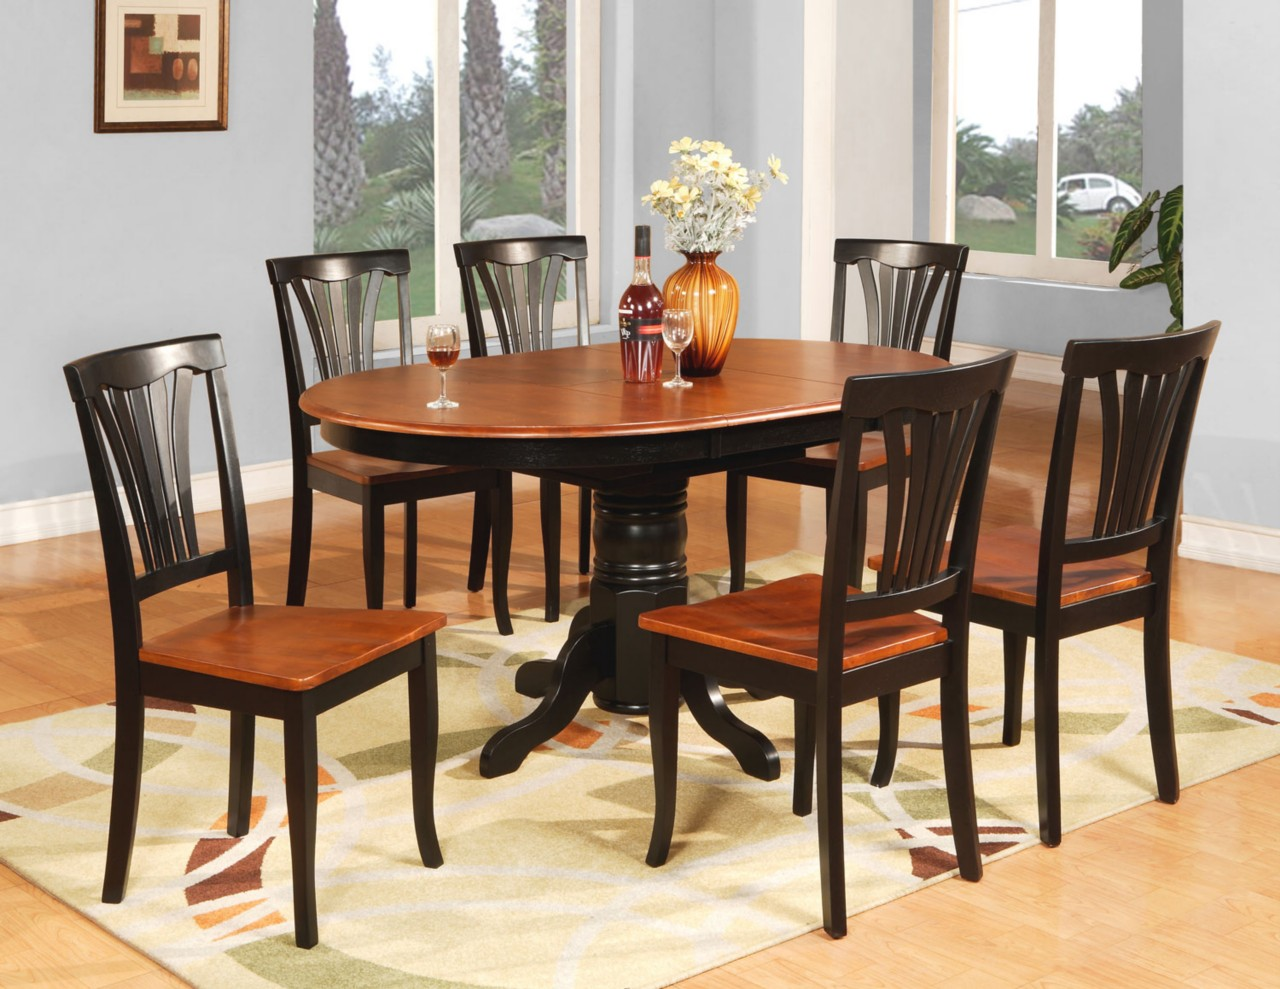 7 pc oval dinette kitchen dining room table 6 chairs ebay for Kitchen dining room chairs